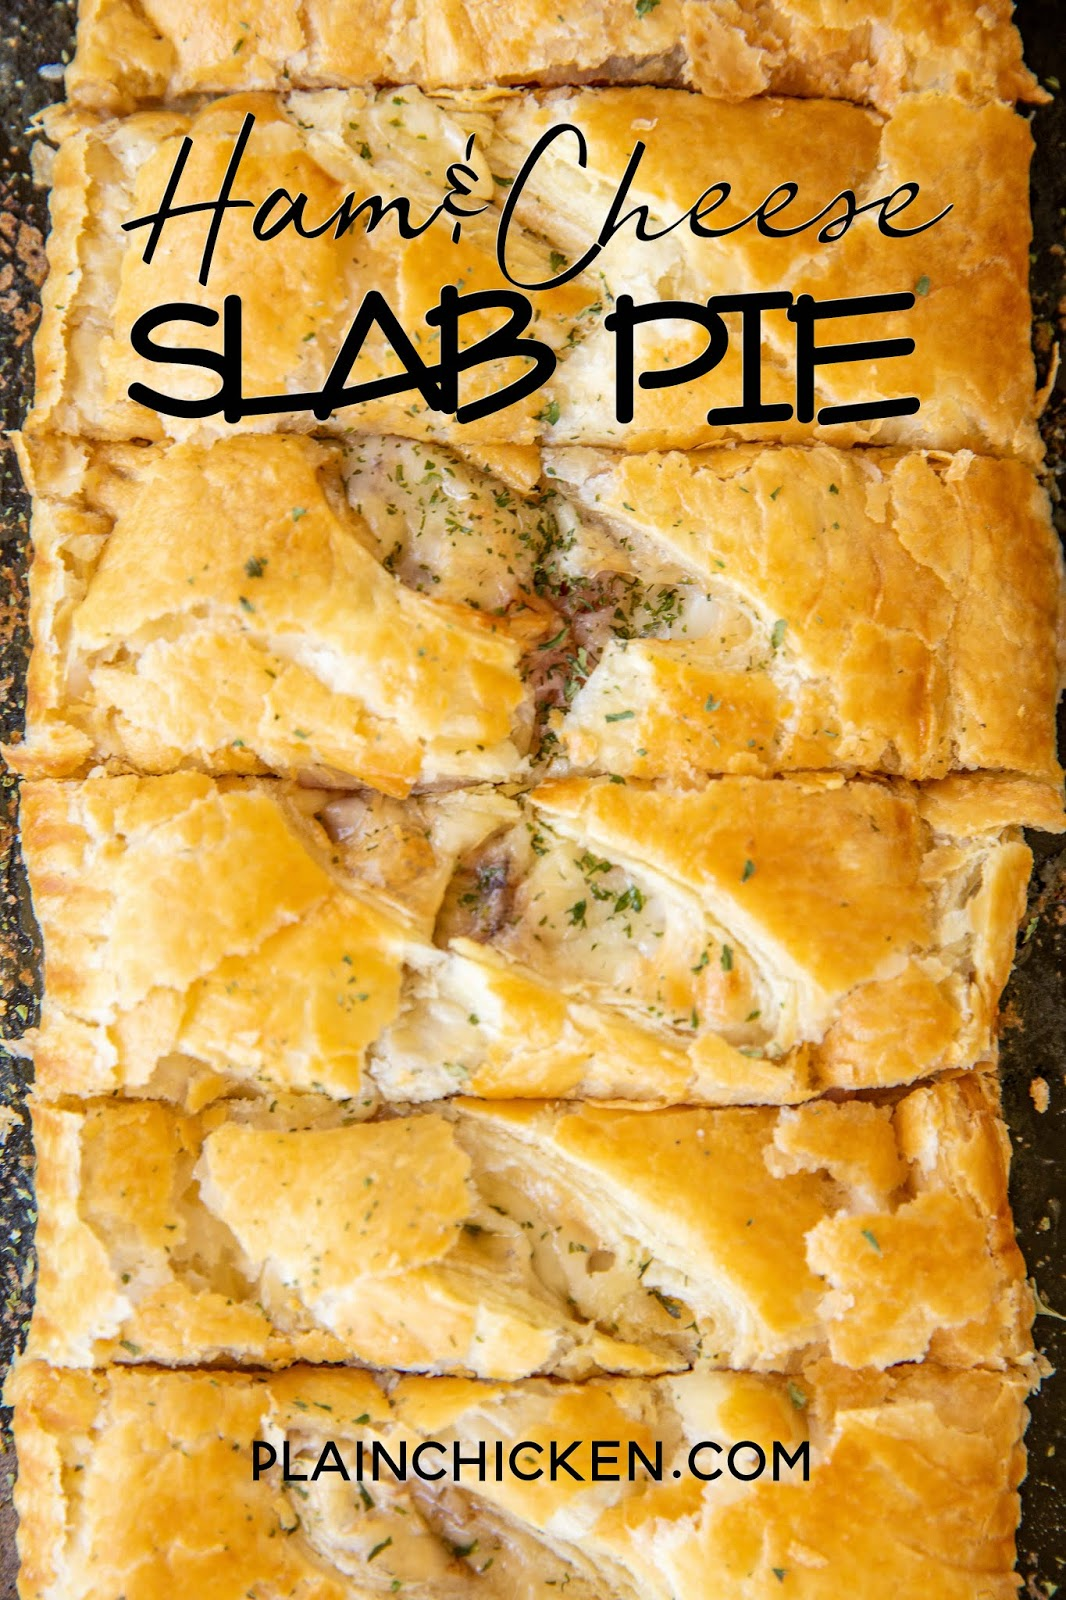 Ham & Cheese Slab Pie - delicious hot ham and cheese puff pastry sandwiches. Only a few simple ingredients - ham, swiss cheese, cream cheese, honey mustard and puff pastry. Brush pies with an egg wash to get a nice golden color. We love these for breakfast, brunch, lunch and dinner. Can make in advance and freeze unbaked for later! A great alternative to plain ham and cheese sandwiches! #puffpastry #ham #cheese #freezermeal #sandwich #bakedsandwich #slabpie